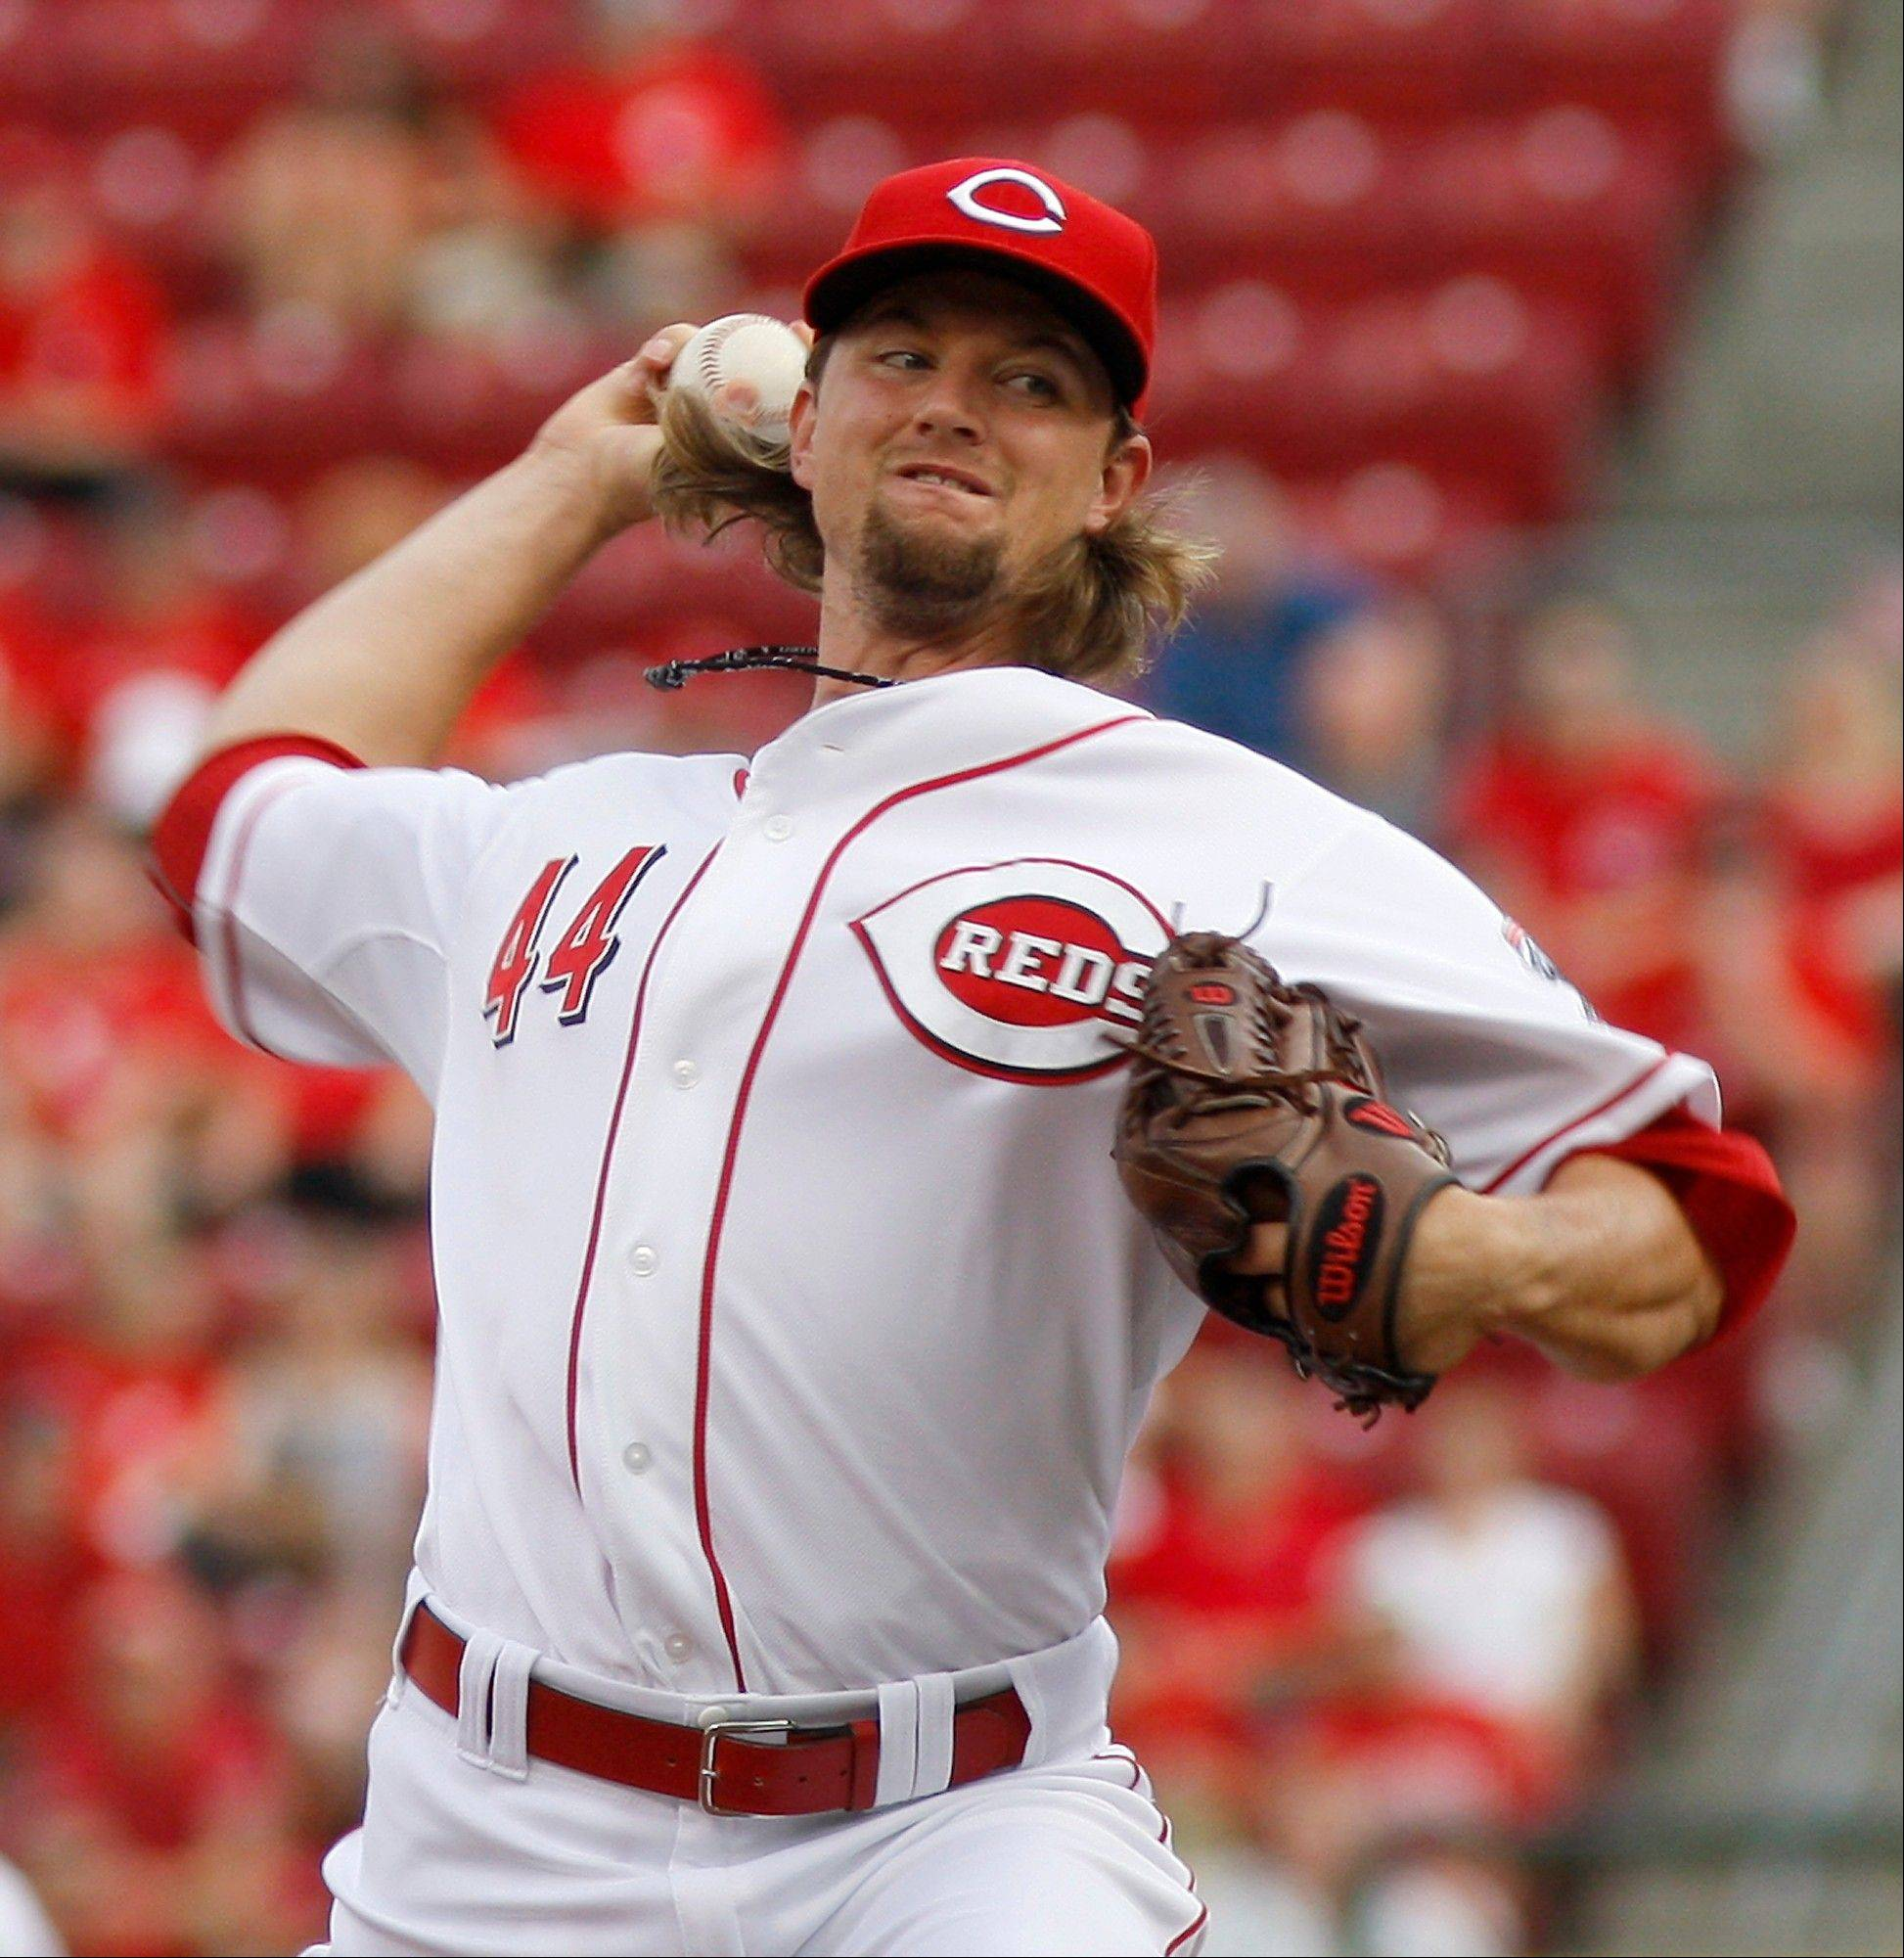 Cincinnati Reds starting pitcher Mike Leake throws against the New York Mets in the first inning during a baseball game, Wednesday, Aug. 15, 2012, in Cincinnati. (AP Photo/David Kohl)